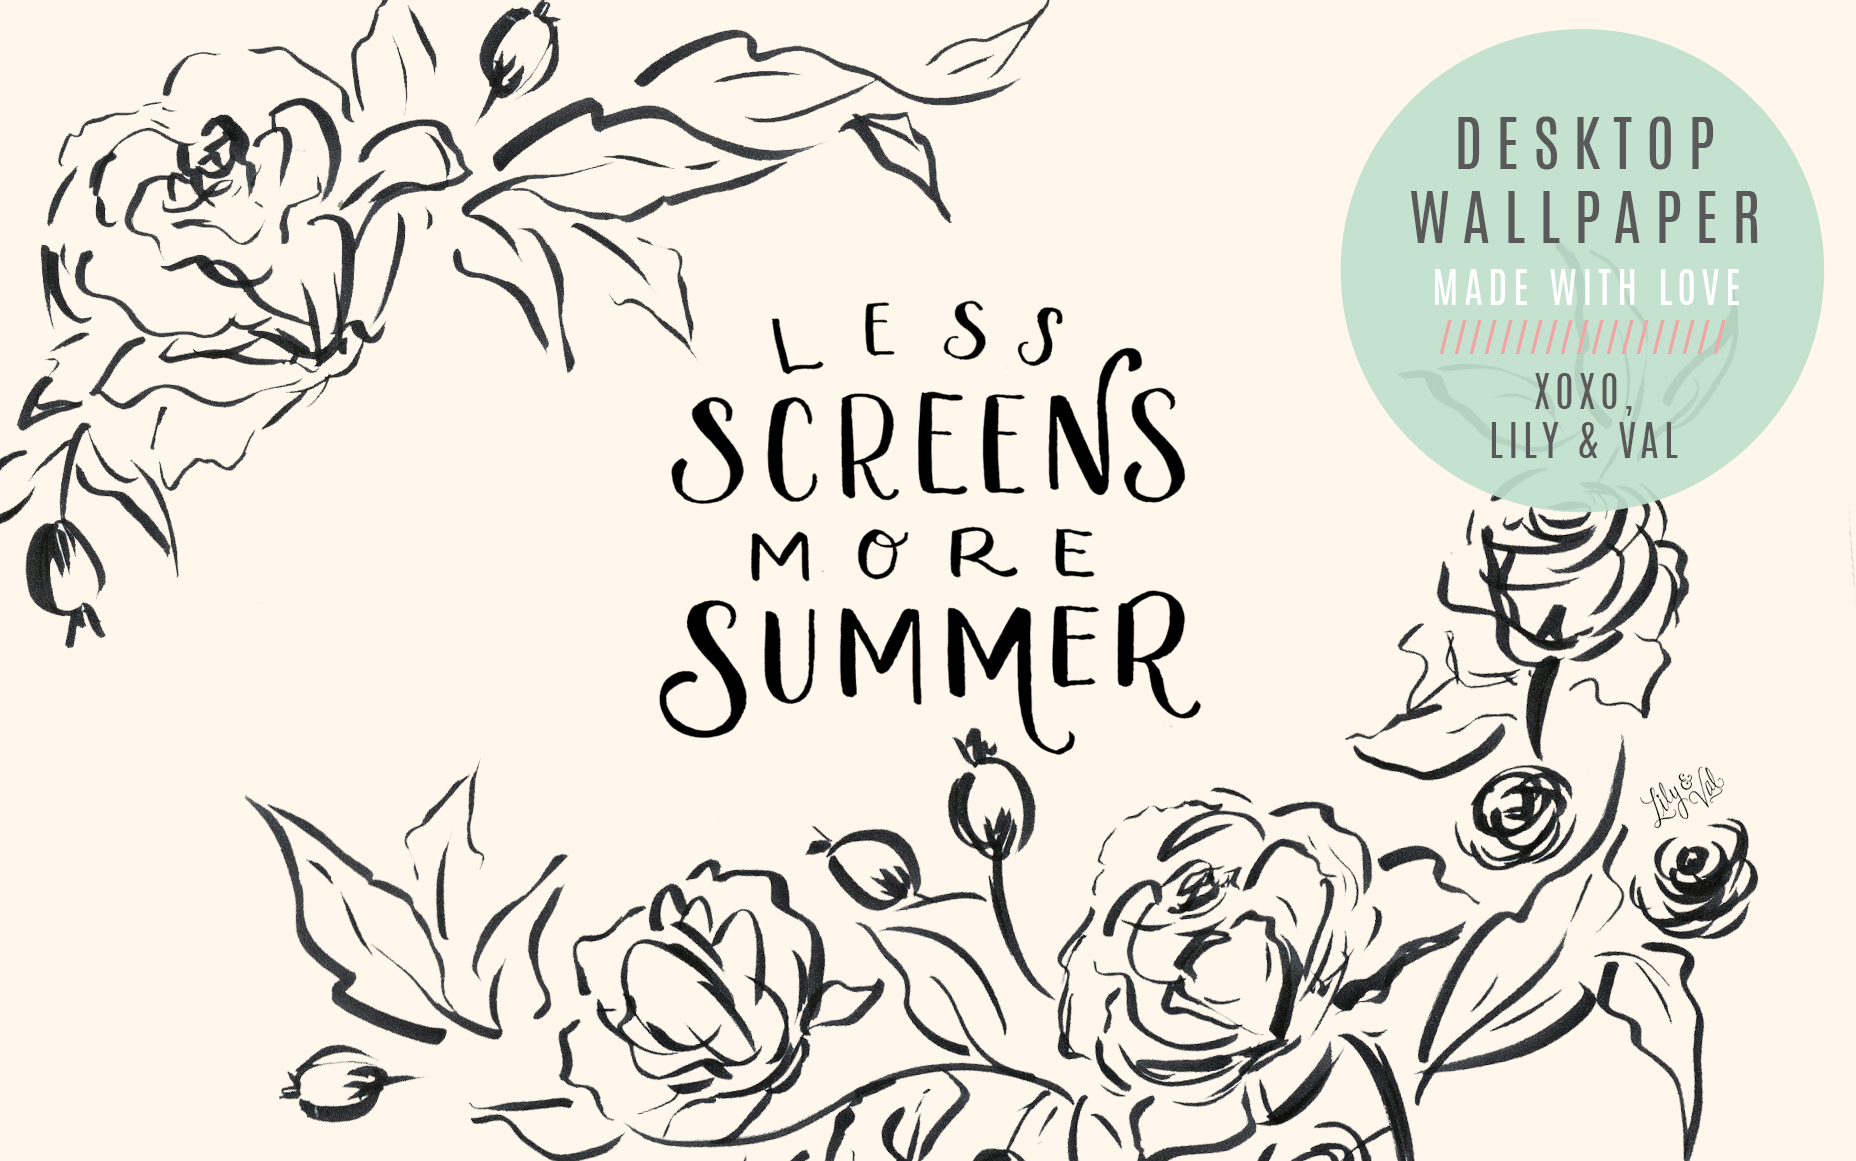 Free hand-drawn floral desktop background by Valerie McKeehan